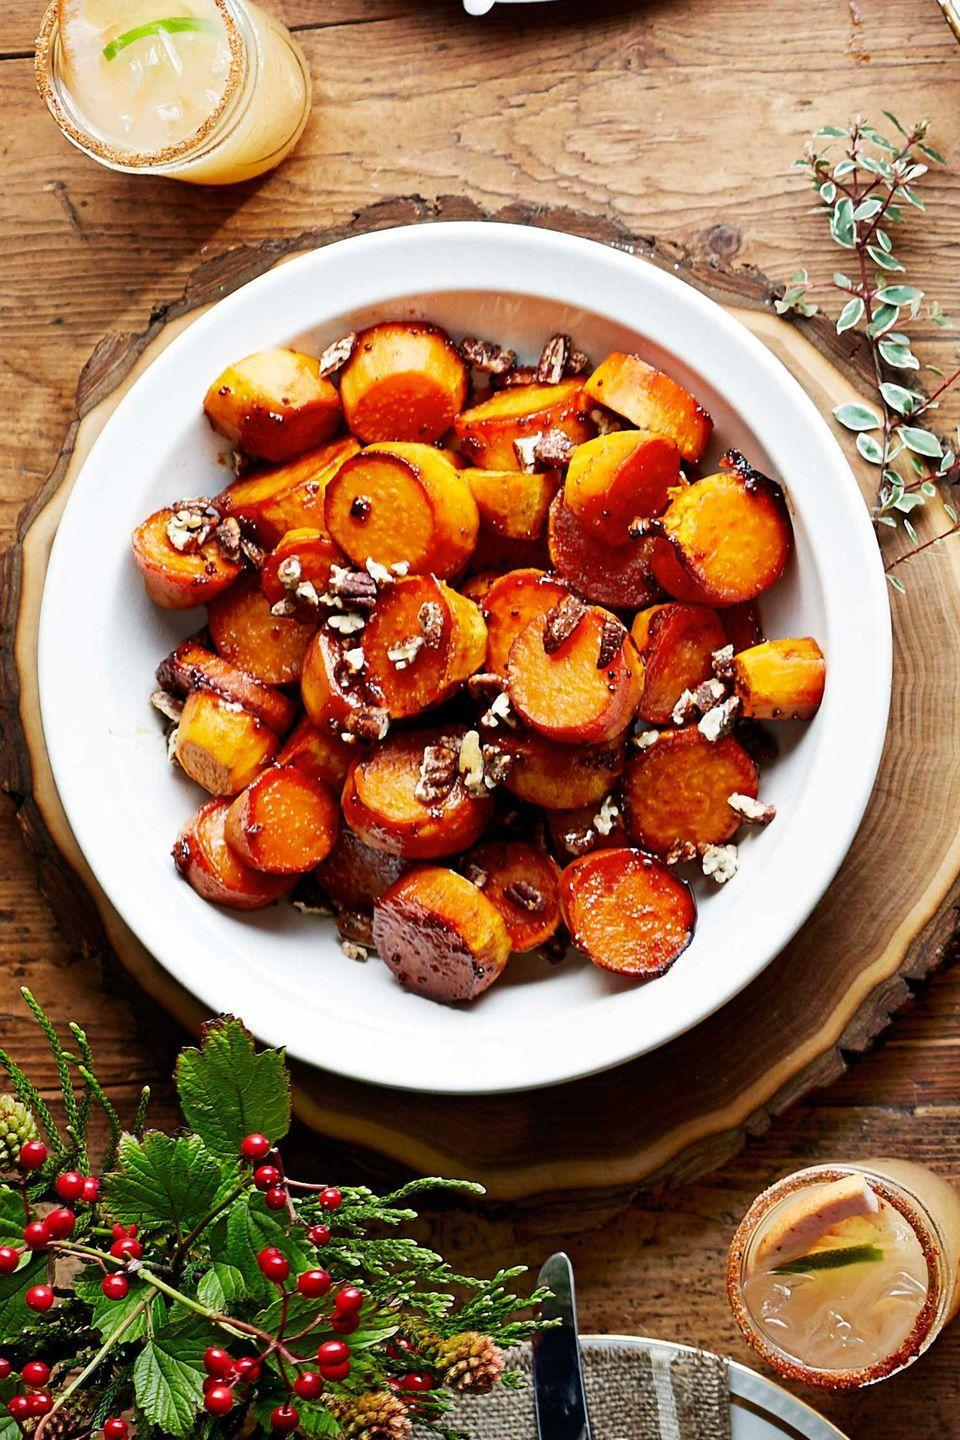 """<p>Store-bought candied or spiced pecans add crunch to this comfort food dish. To make ahead, cover and chill cooked potatoes in glaze in baking dishes the day before. Let stand at room temperature, then reheat covered at 350 degrees F for about 20 minutes or until thoroughly heated.</p><p><strong><a href=""""https://www.countryliving.com/food-drinks/recipes/a5913/sorghum-sweet-potatoes-recipe-clx1114/"""" rel=""""nofollow noopener"""" target=""""_blank"""" data-ylk=""""slk:Get the recipe"""" class=""""link rapid-noclick-resp"""">Get the recipe</a>.</strong></p>"""